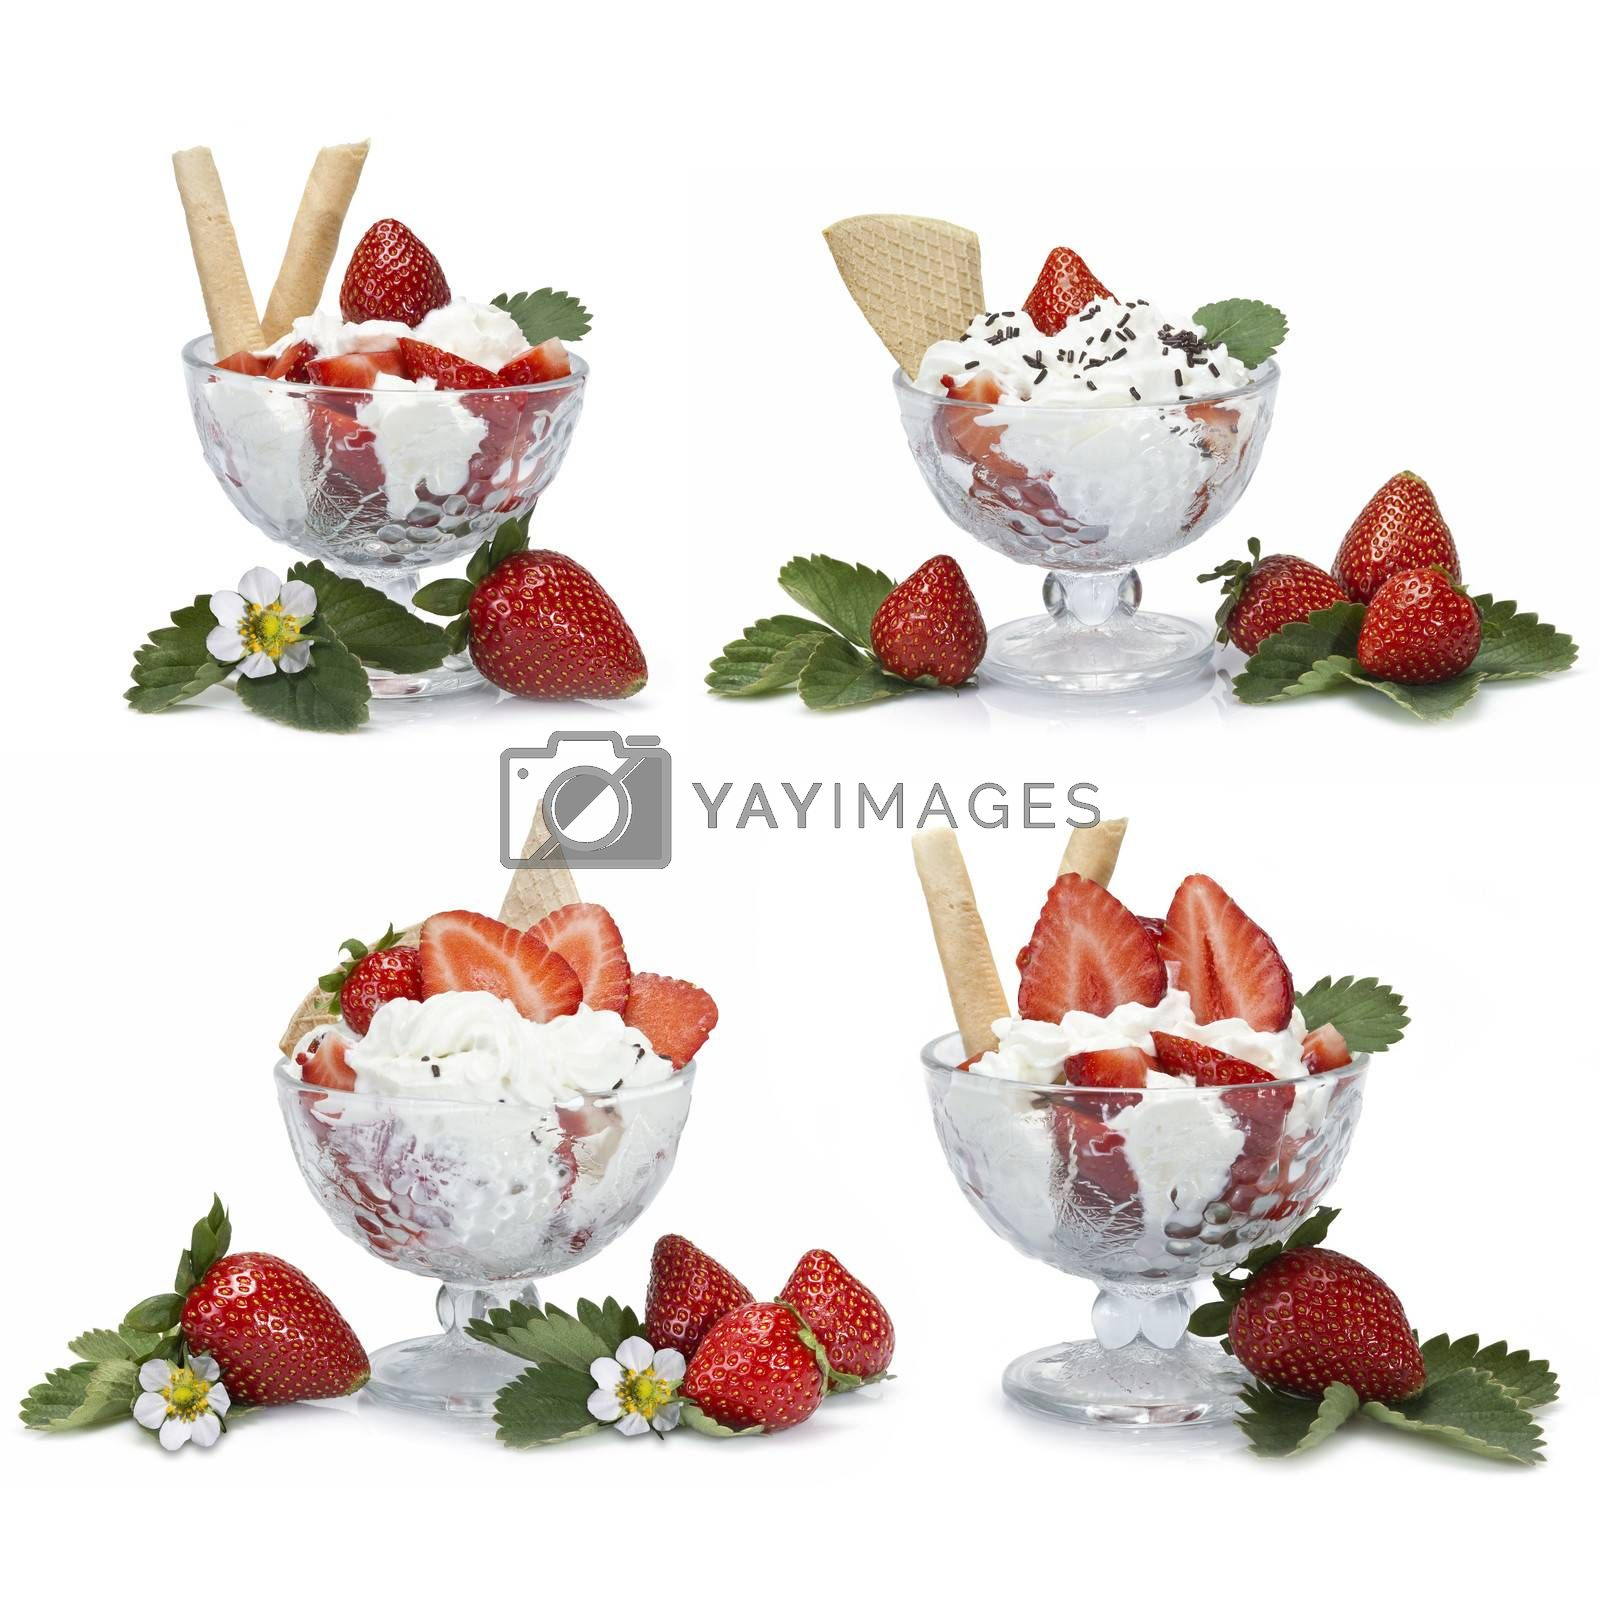 Four different presentations of strawberries with cream cups